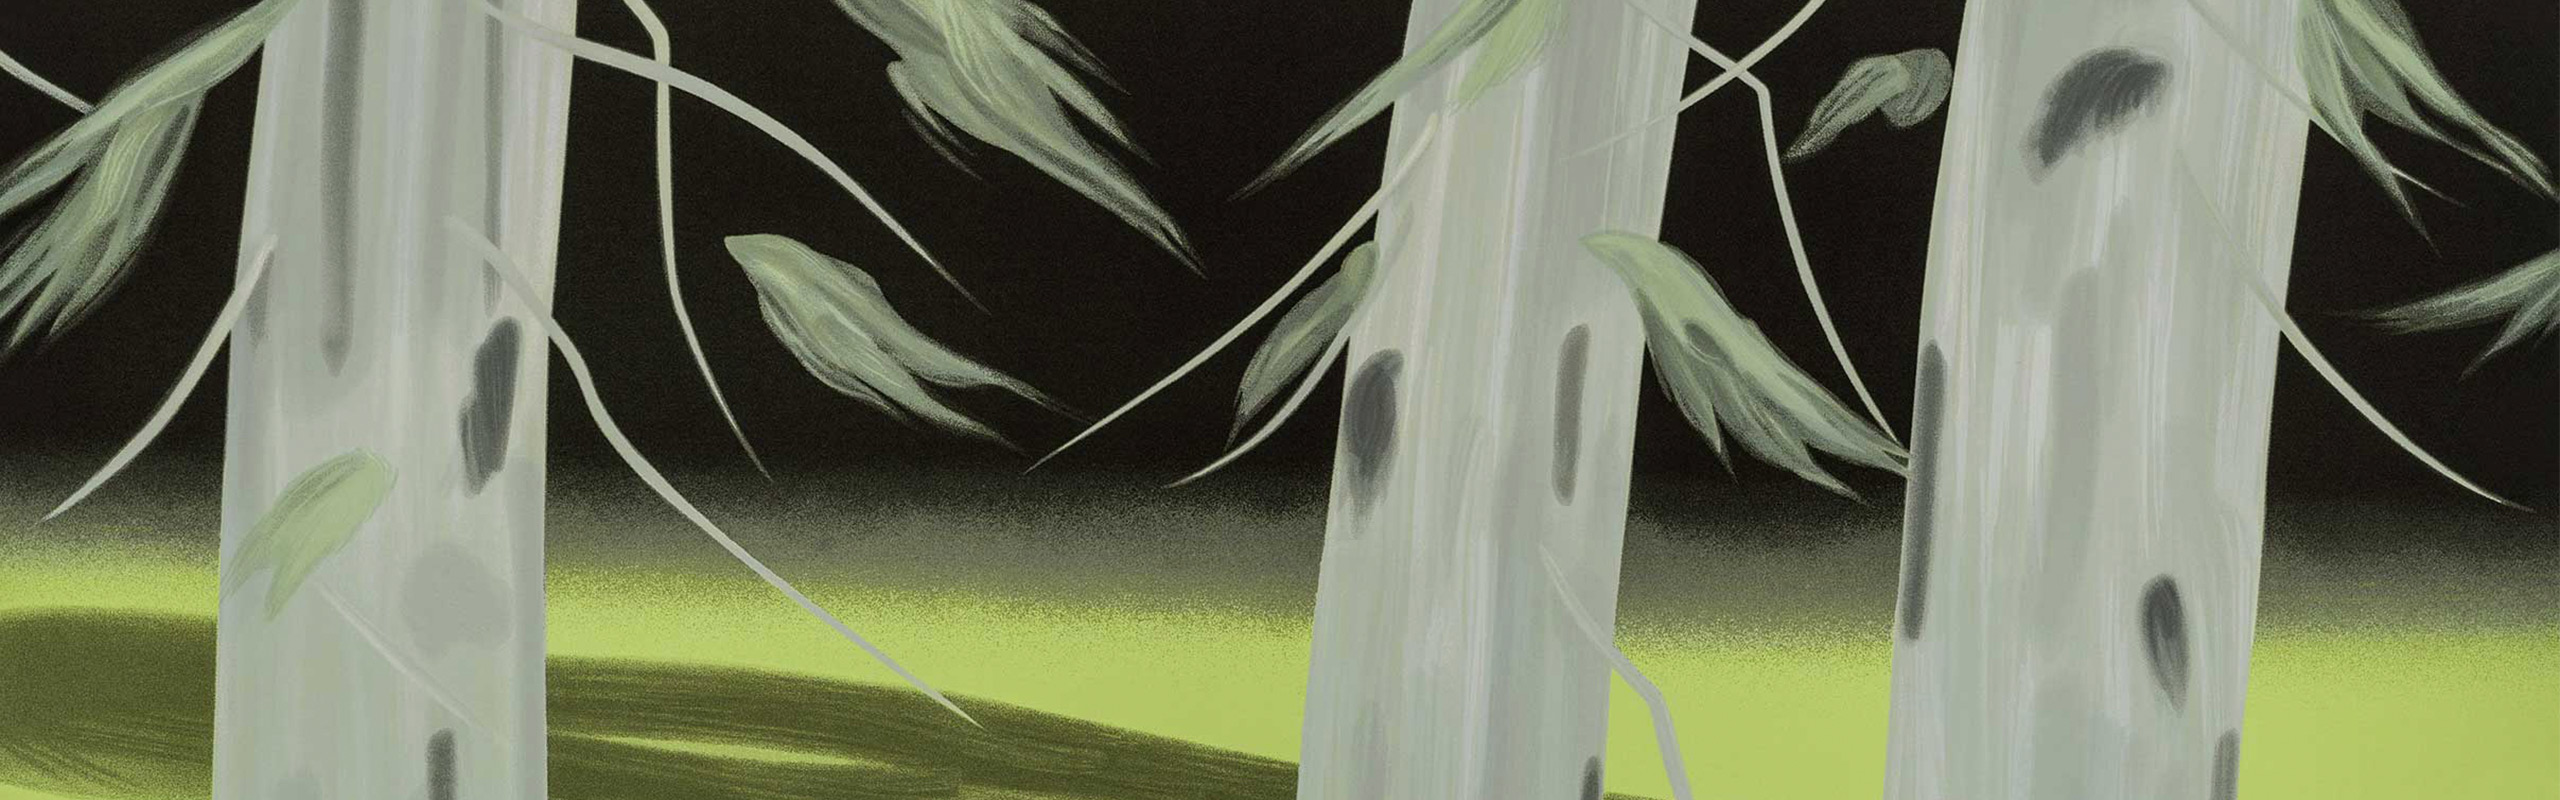 Alex Katz' Three Trees screen print